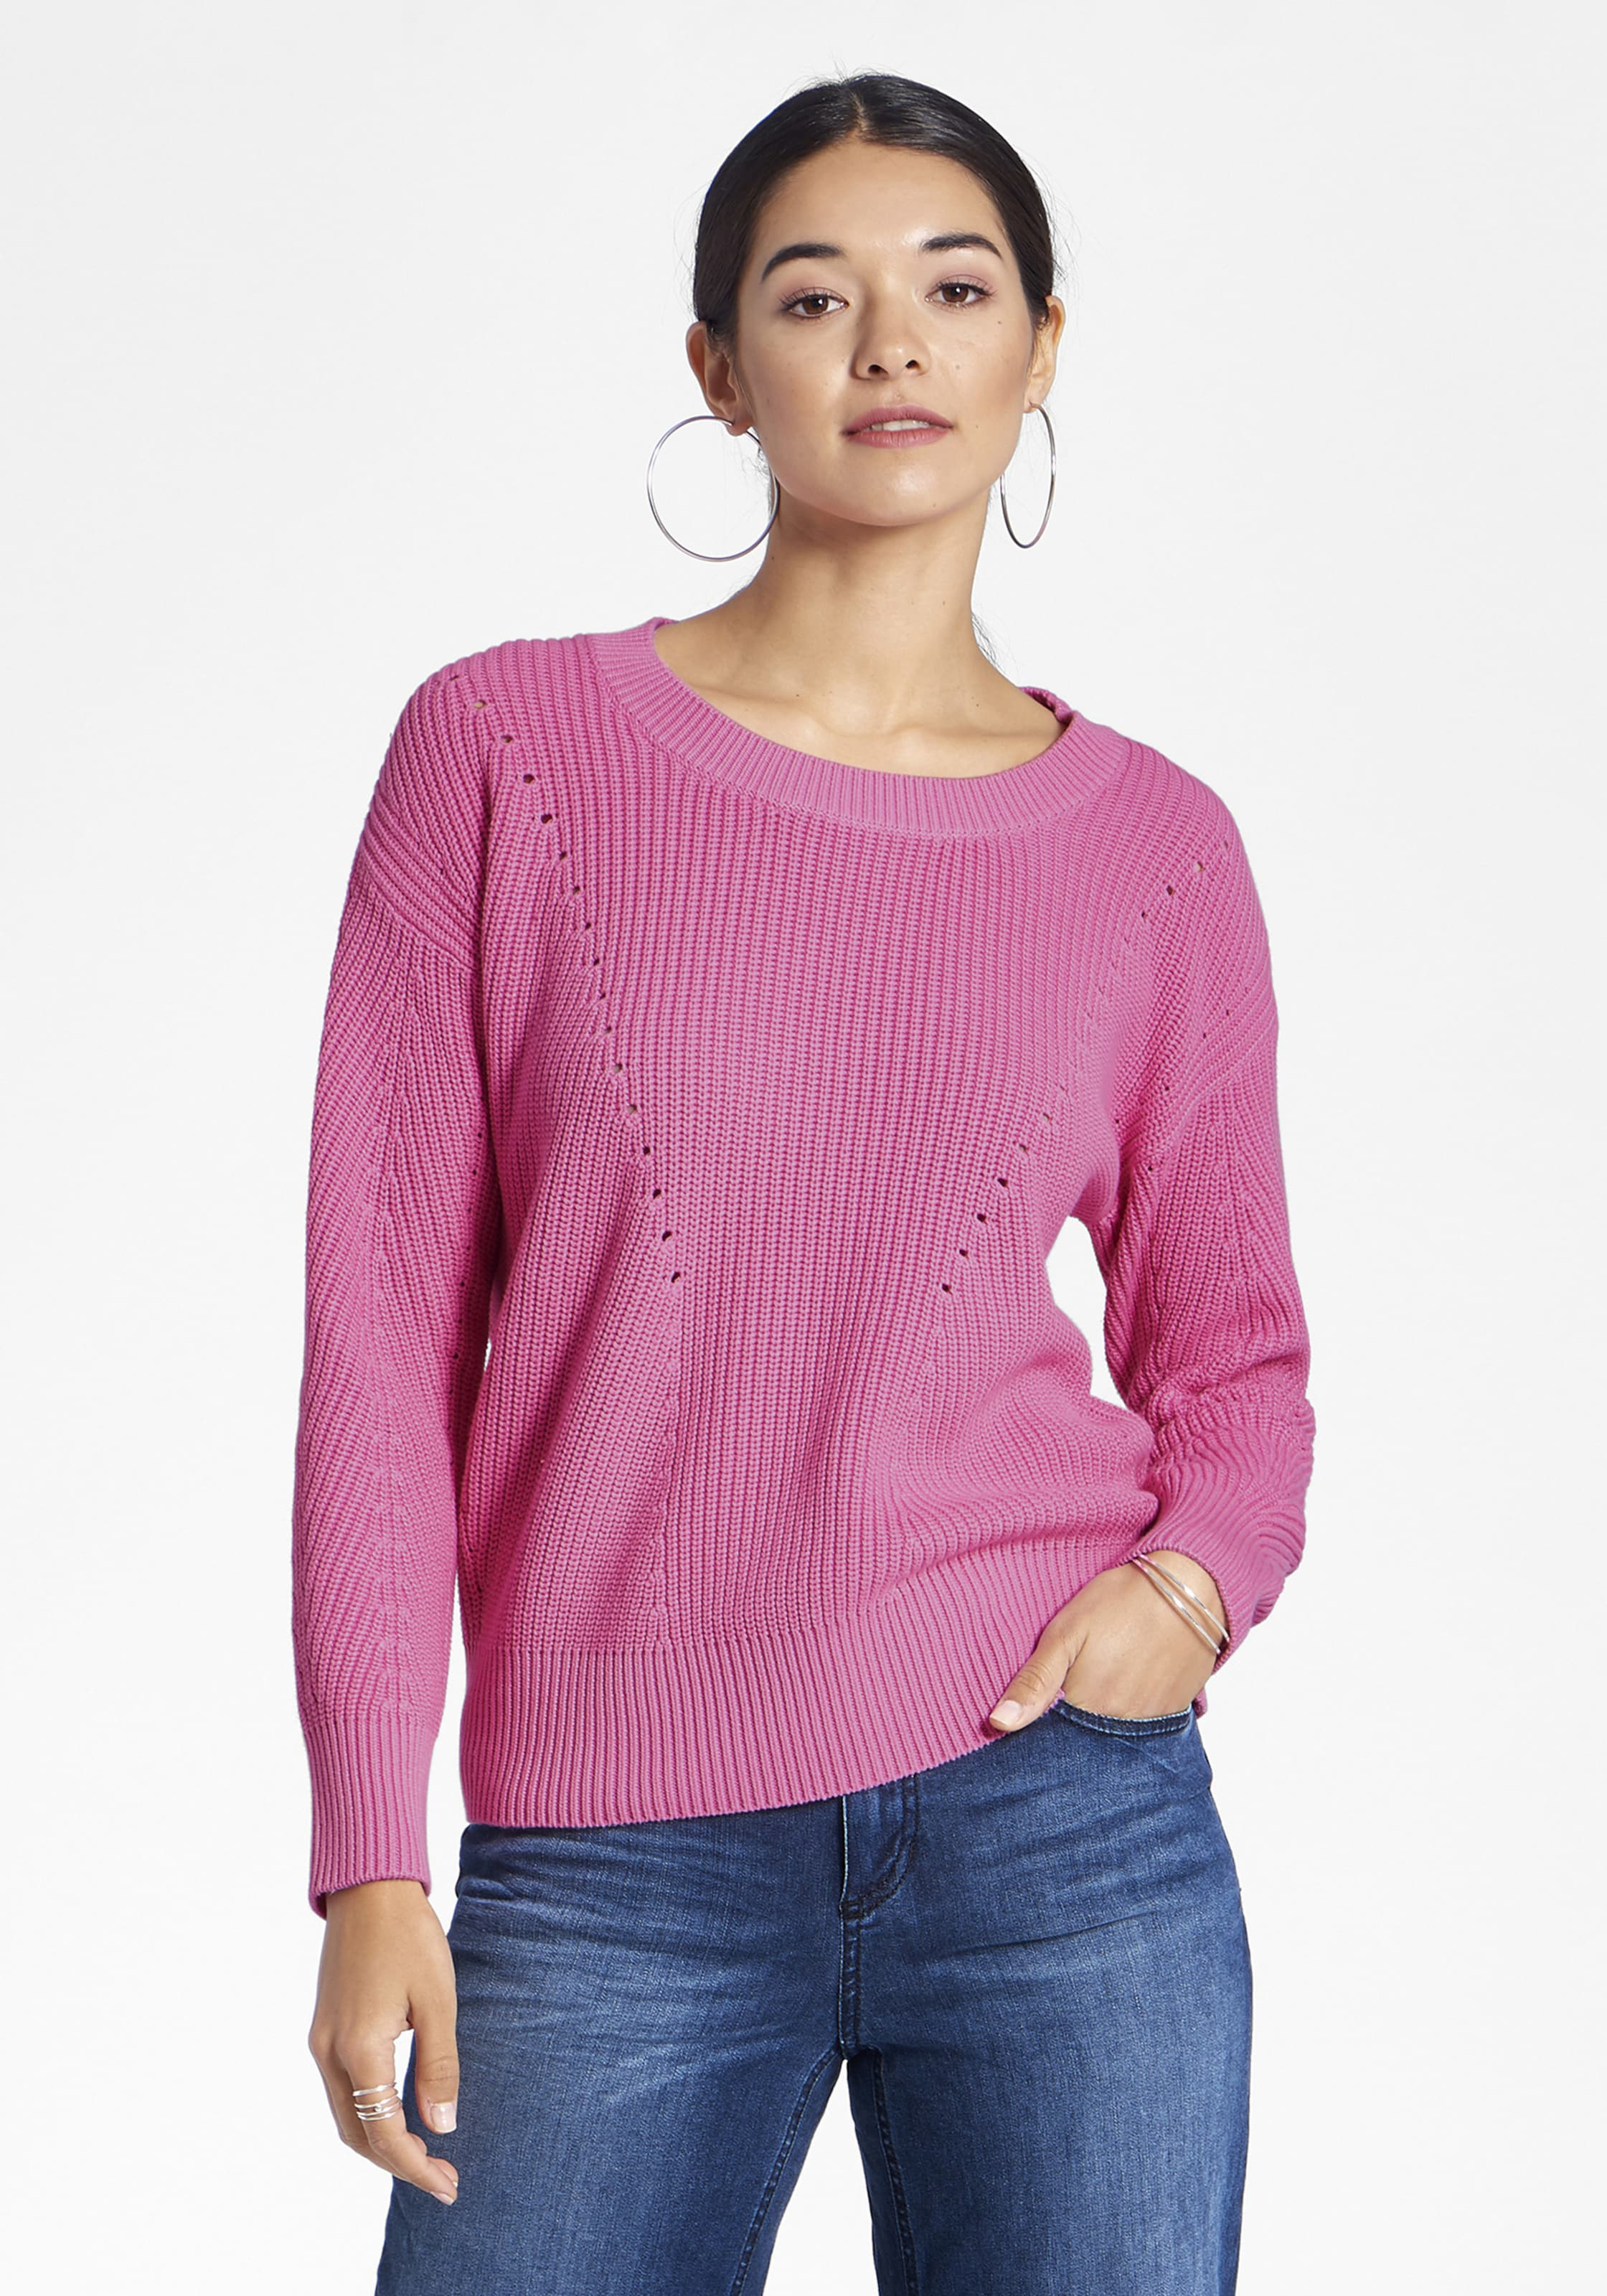 In In Pink Peter Hahn Hahn Peter Pink Pullover Peter Pullover bf76gyYv